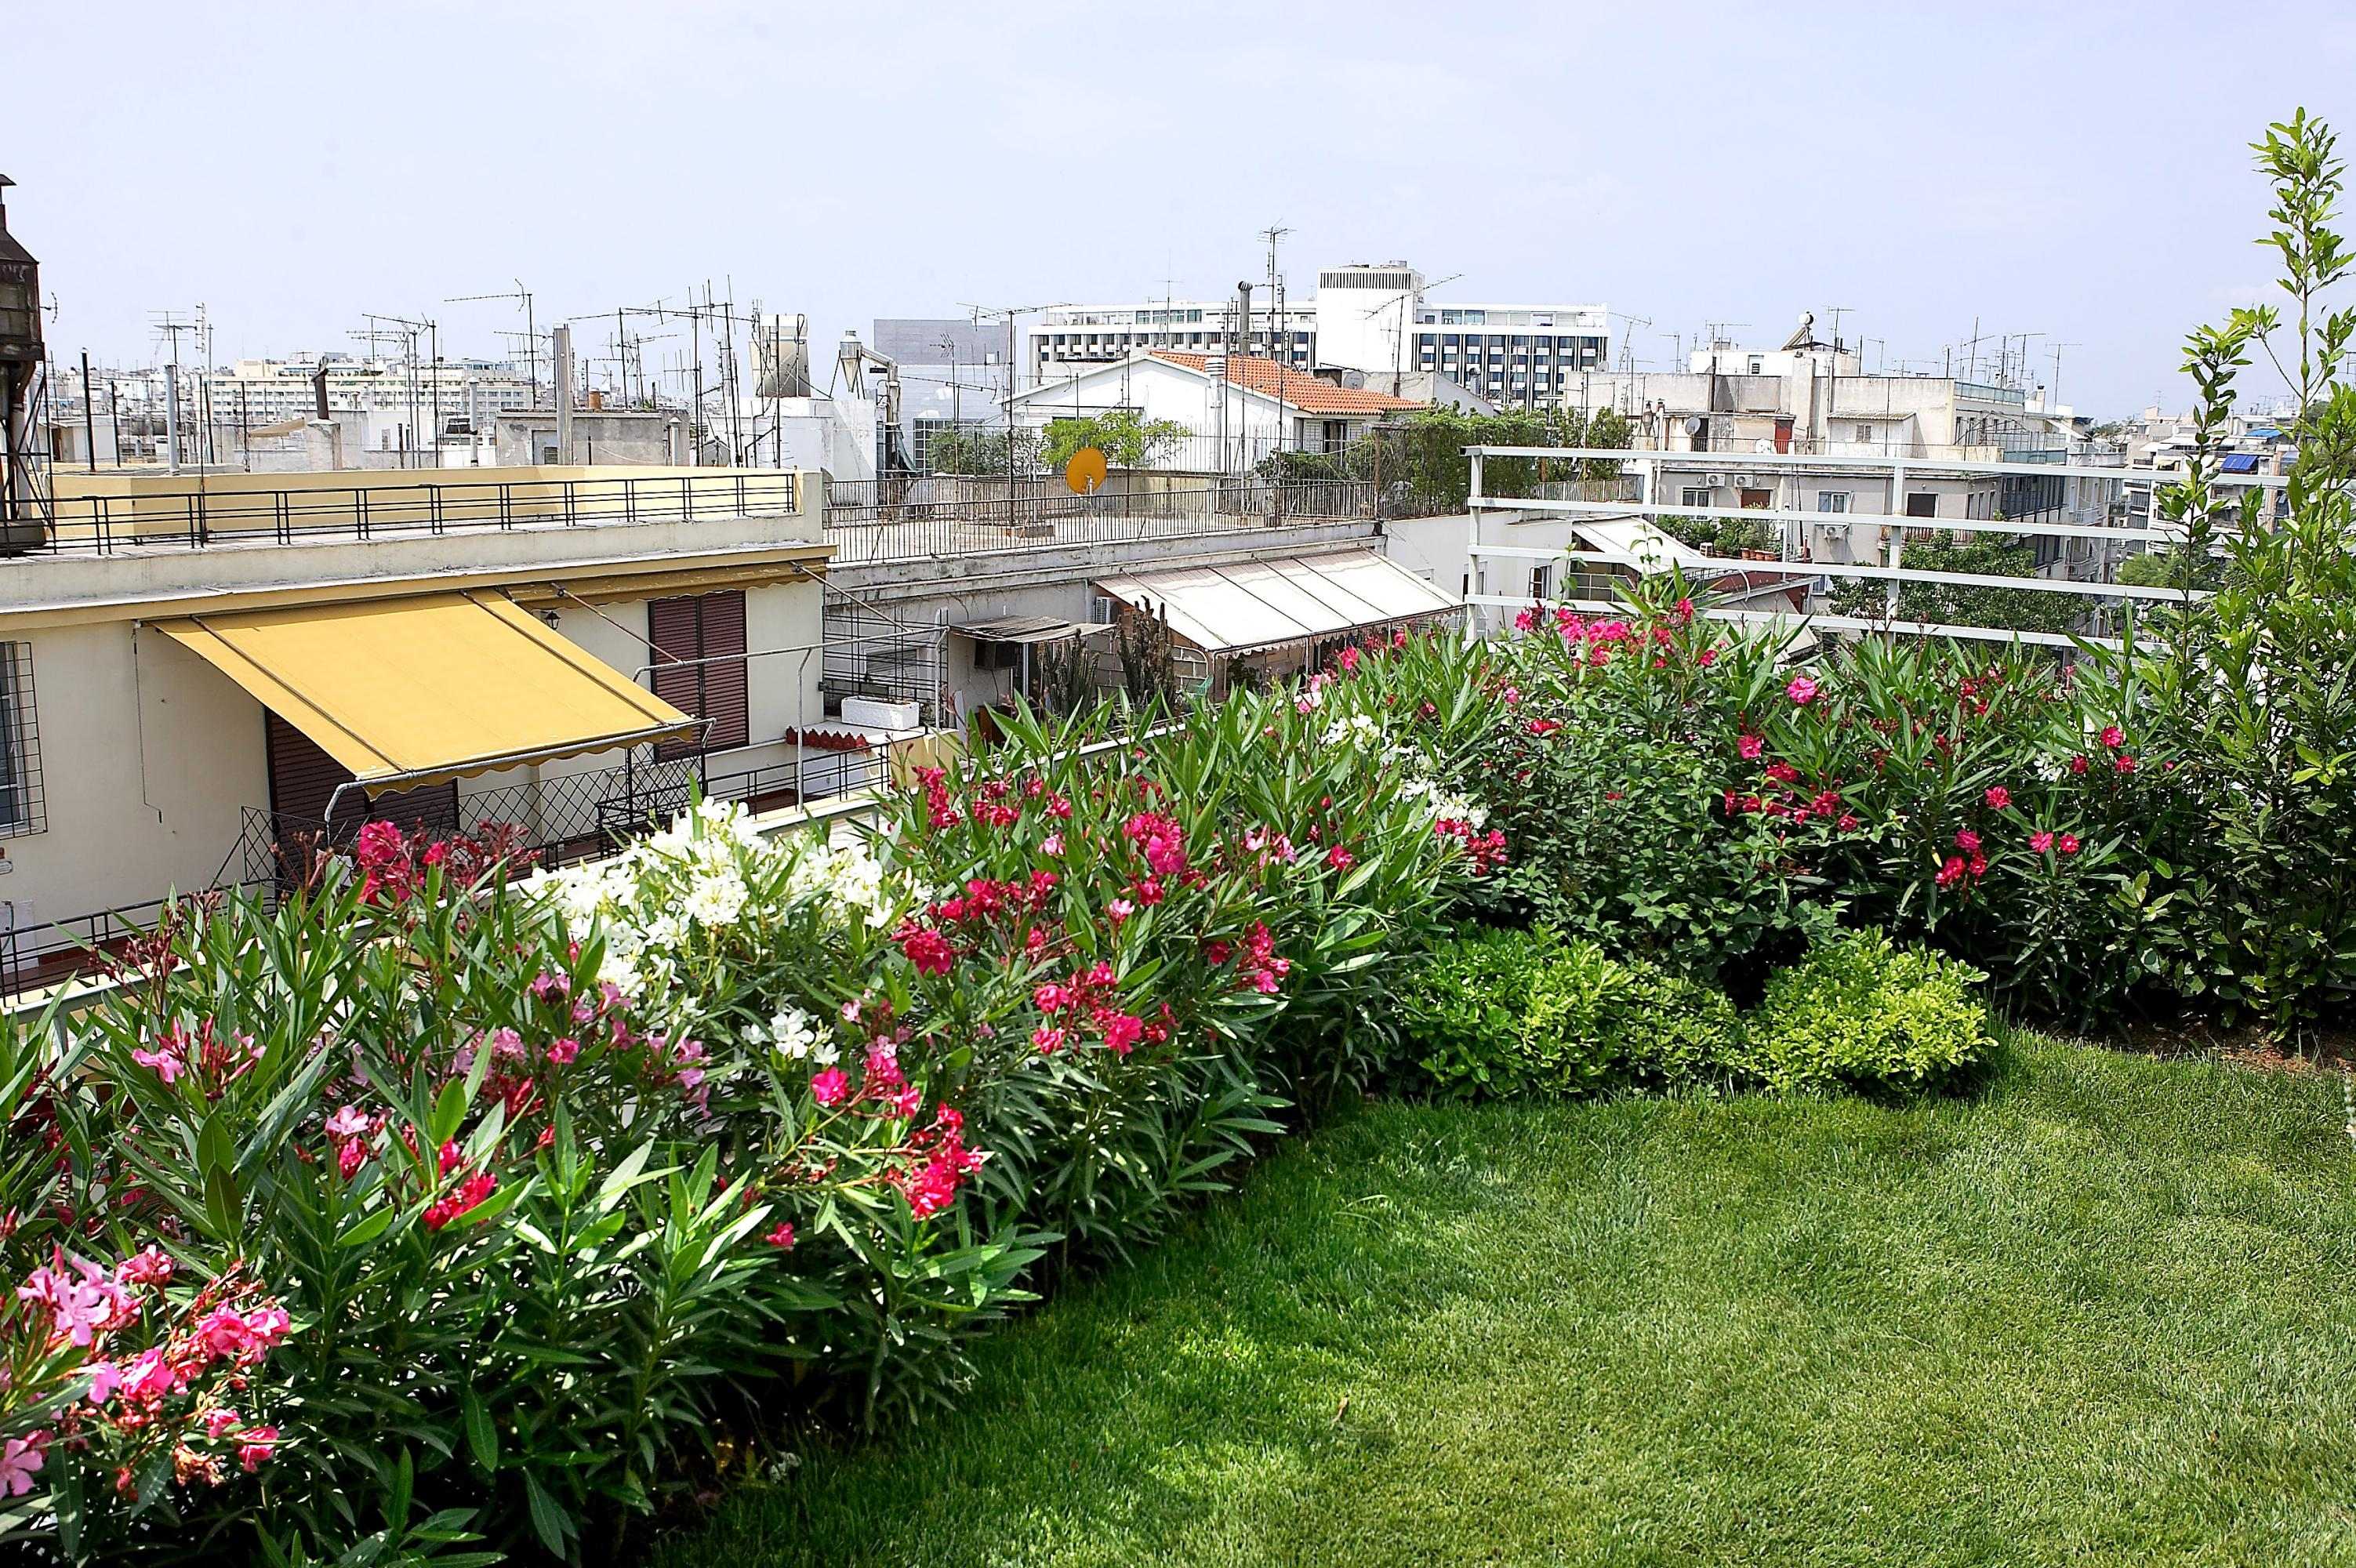 Roof garden with lawn and Oleander